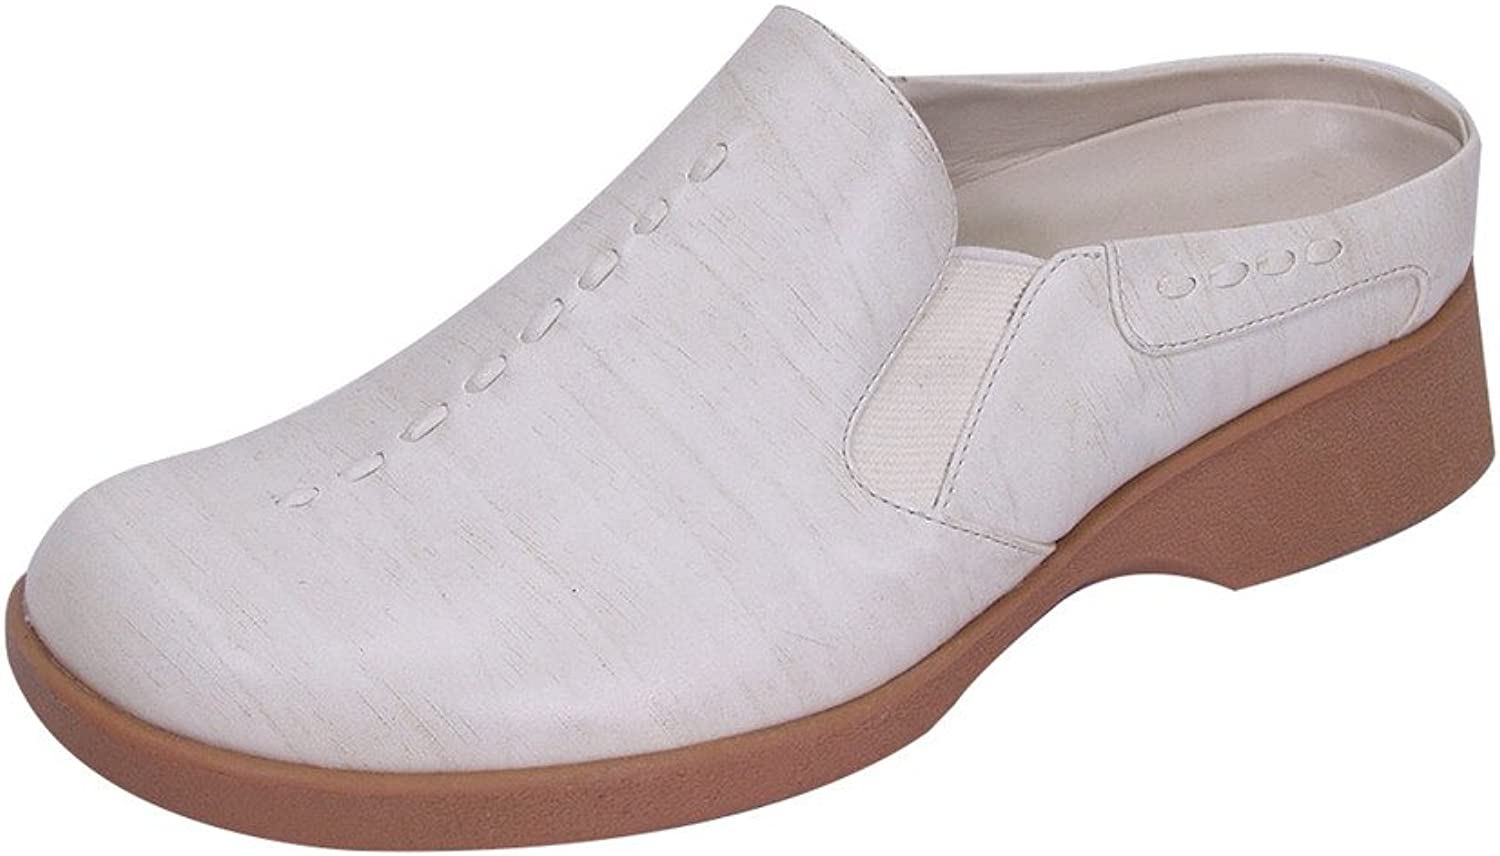 Fuzzy Glenda Women Wide Width Stylish, Adorable, Trendy Clog shoes for Extended Comfort